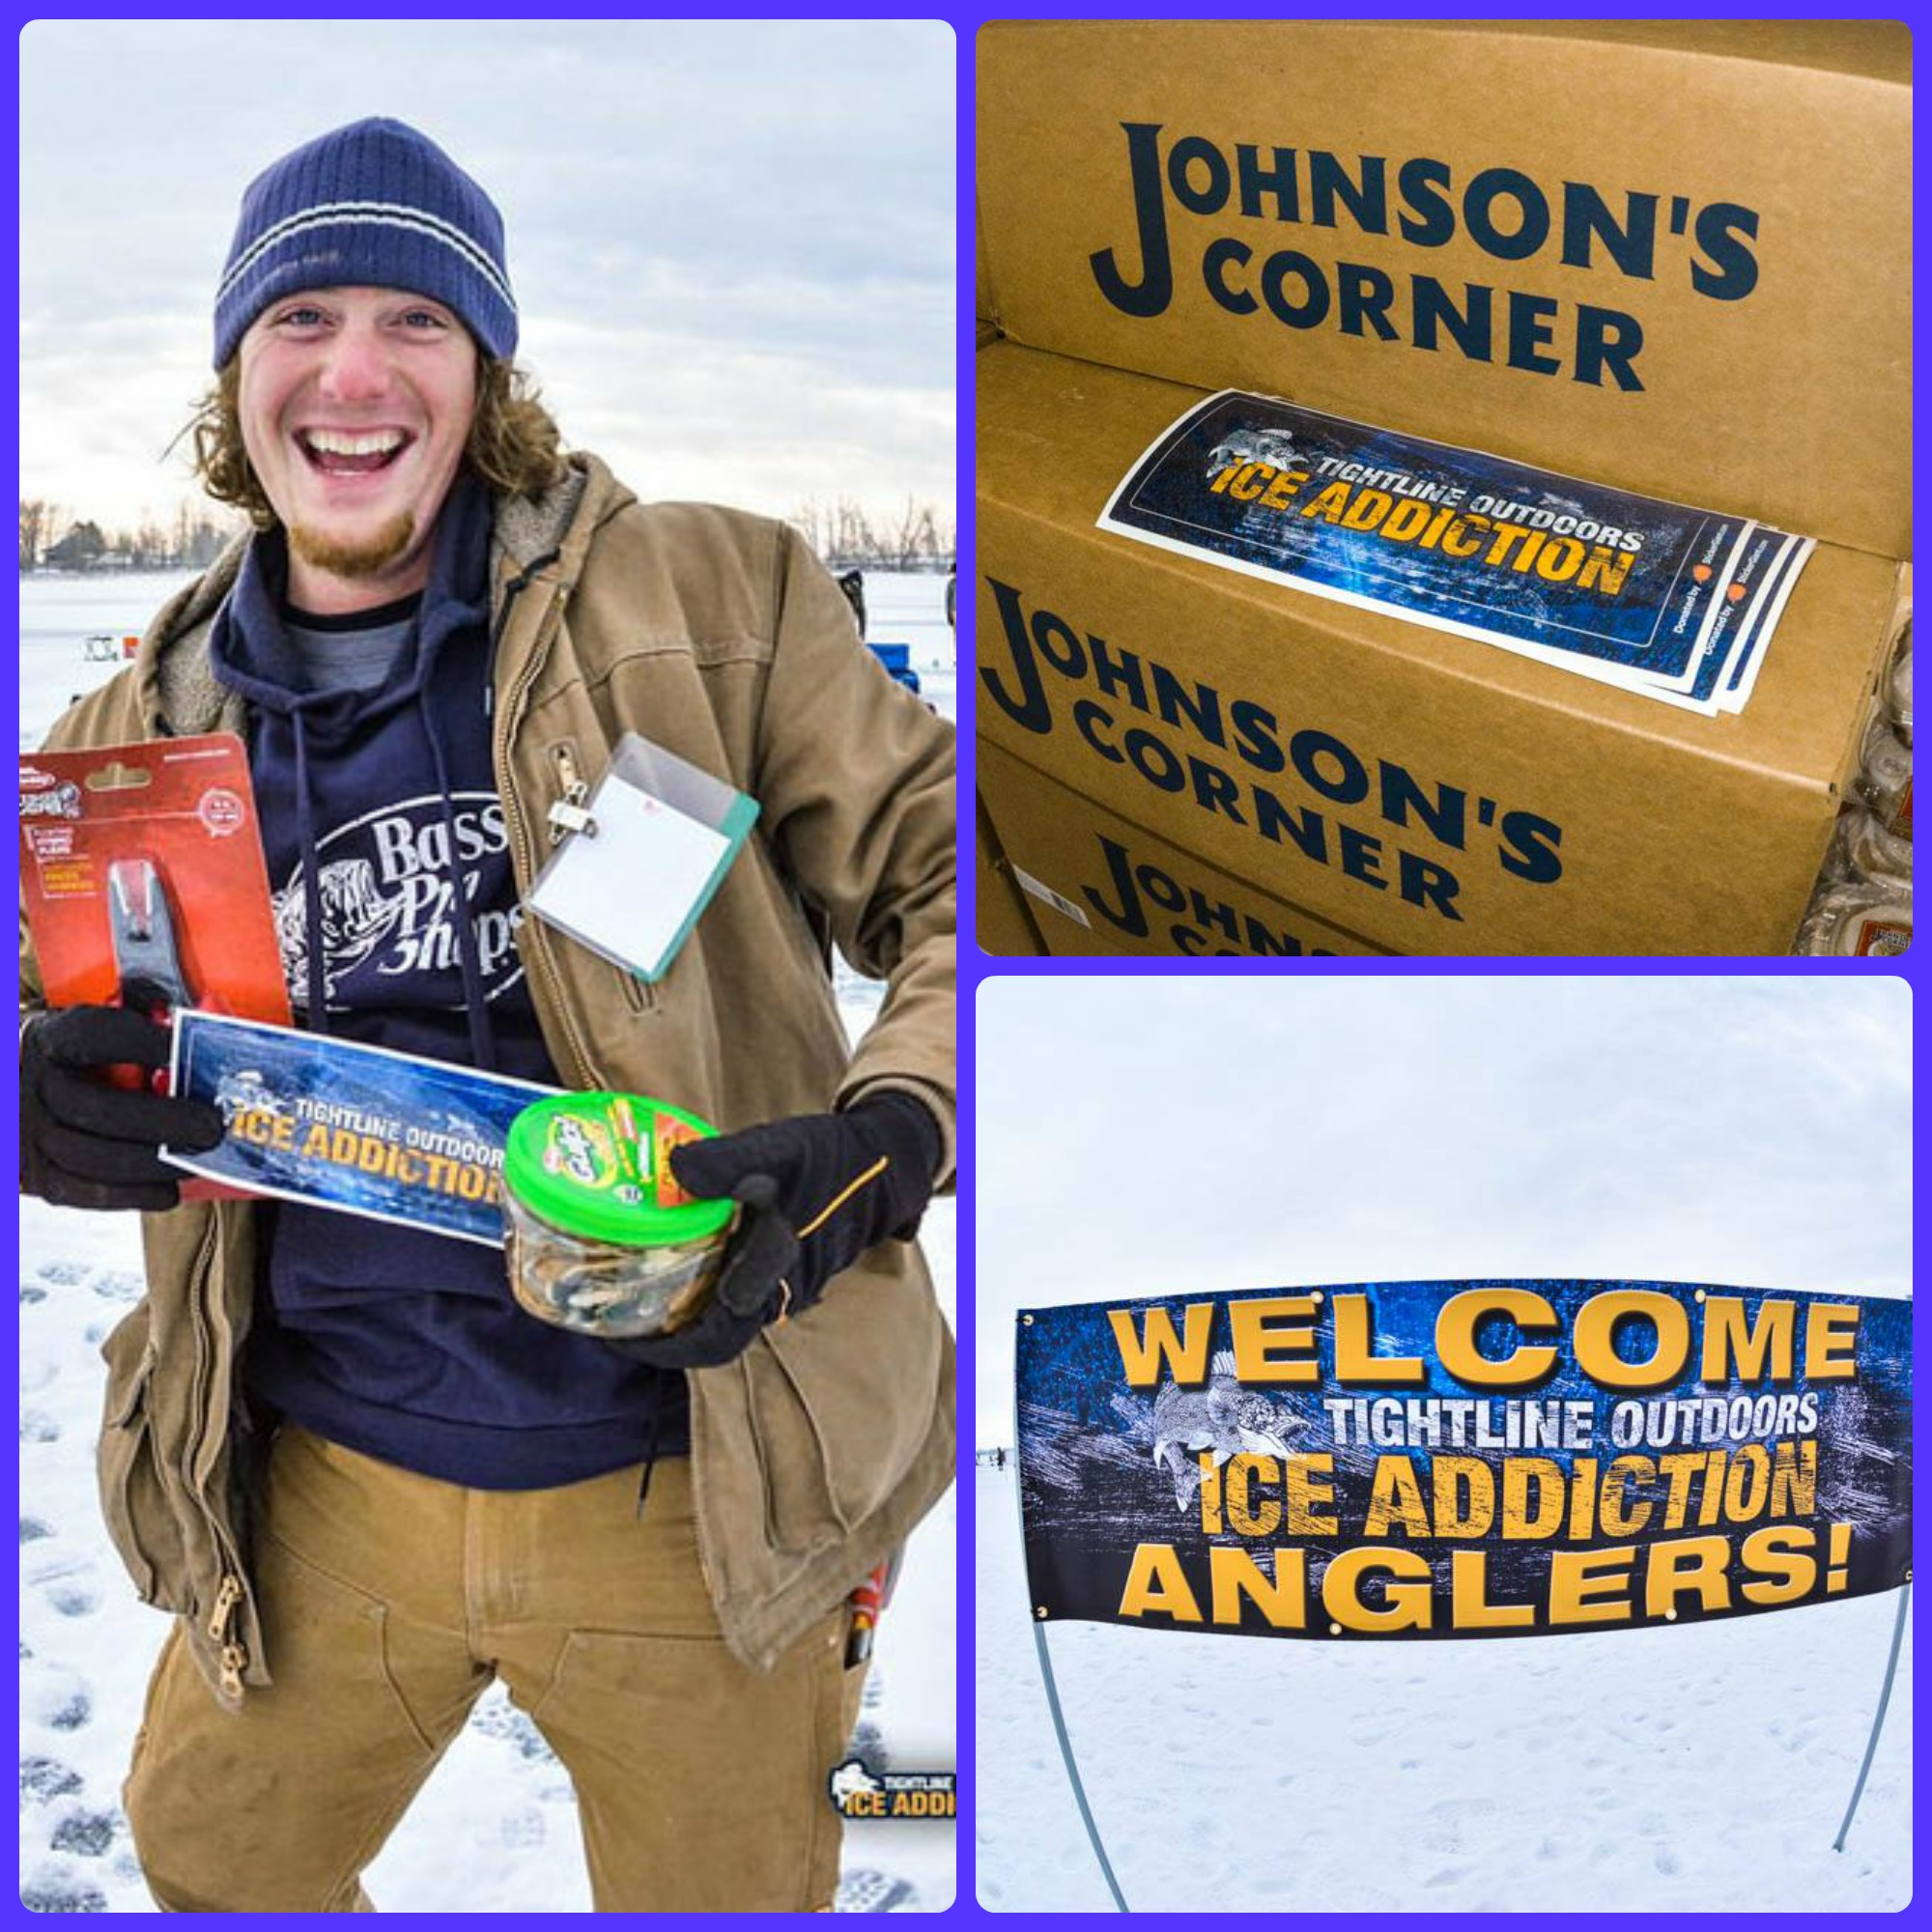 StickerGiant-helped-sponsor-the-Tightline-Outdoors-Ice-Addiction-event